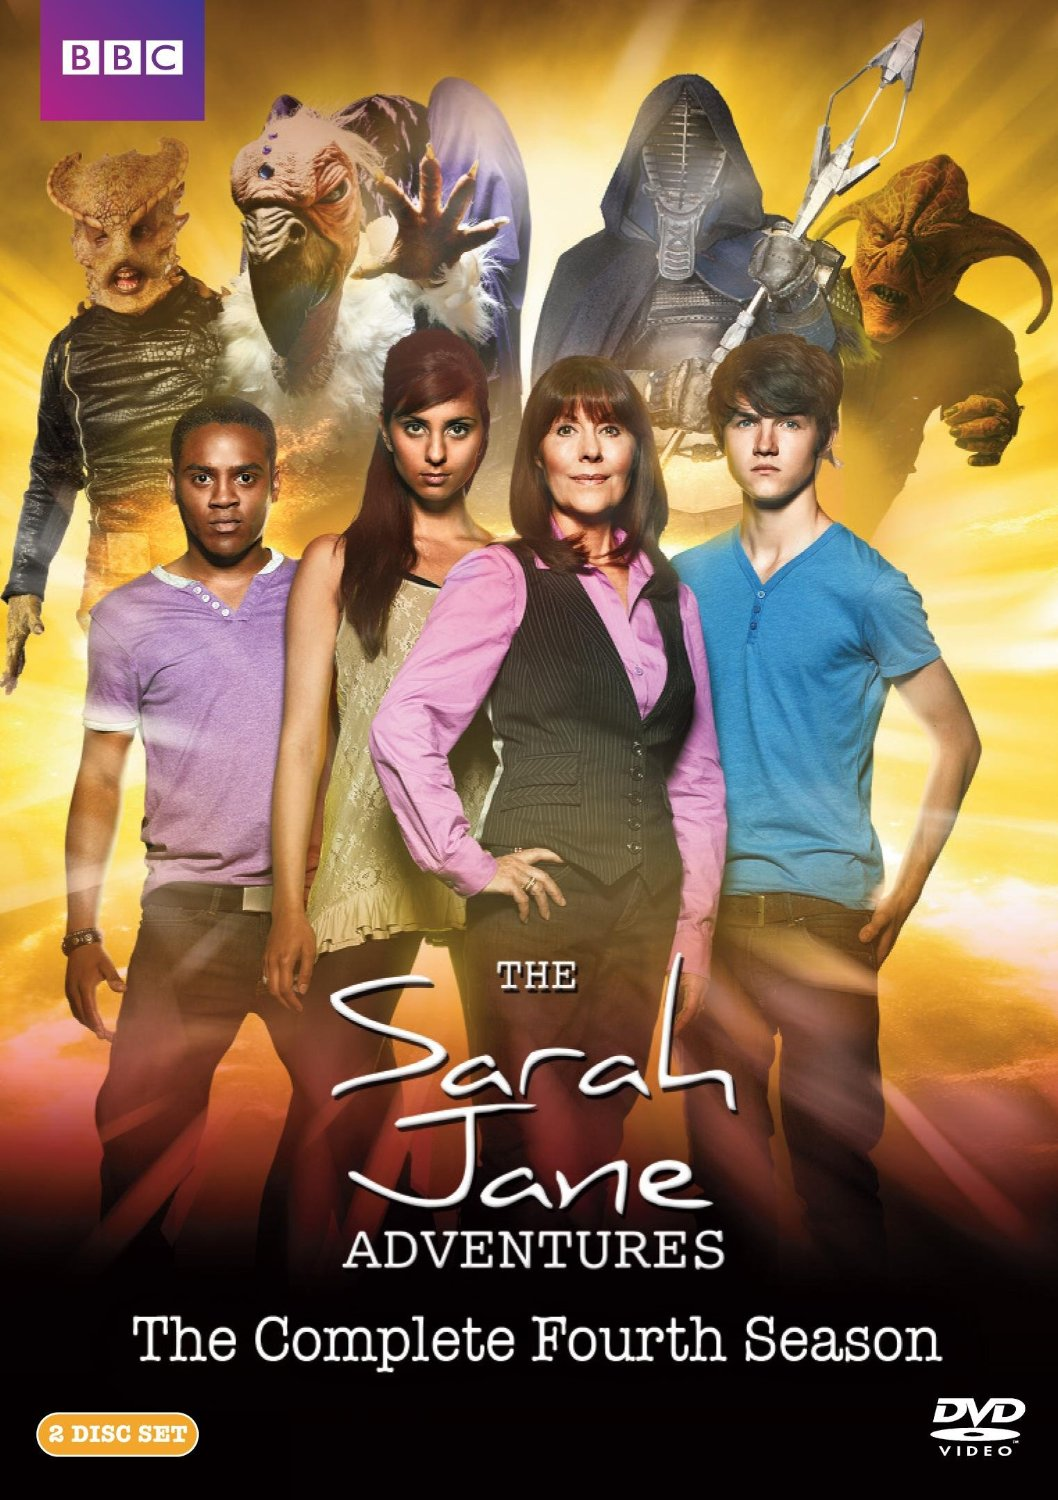 Sarah Jane Adventures Season 4 DVD